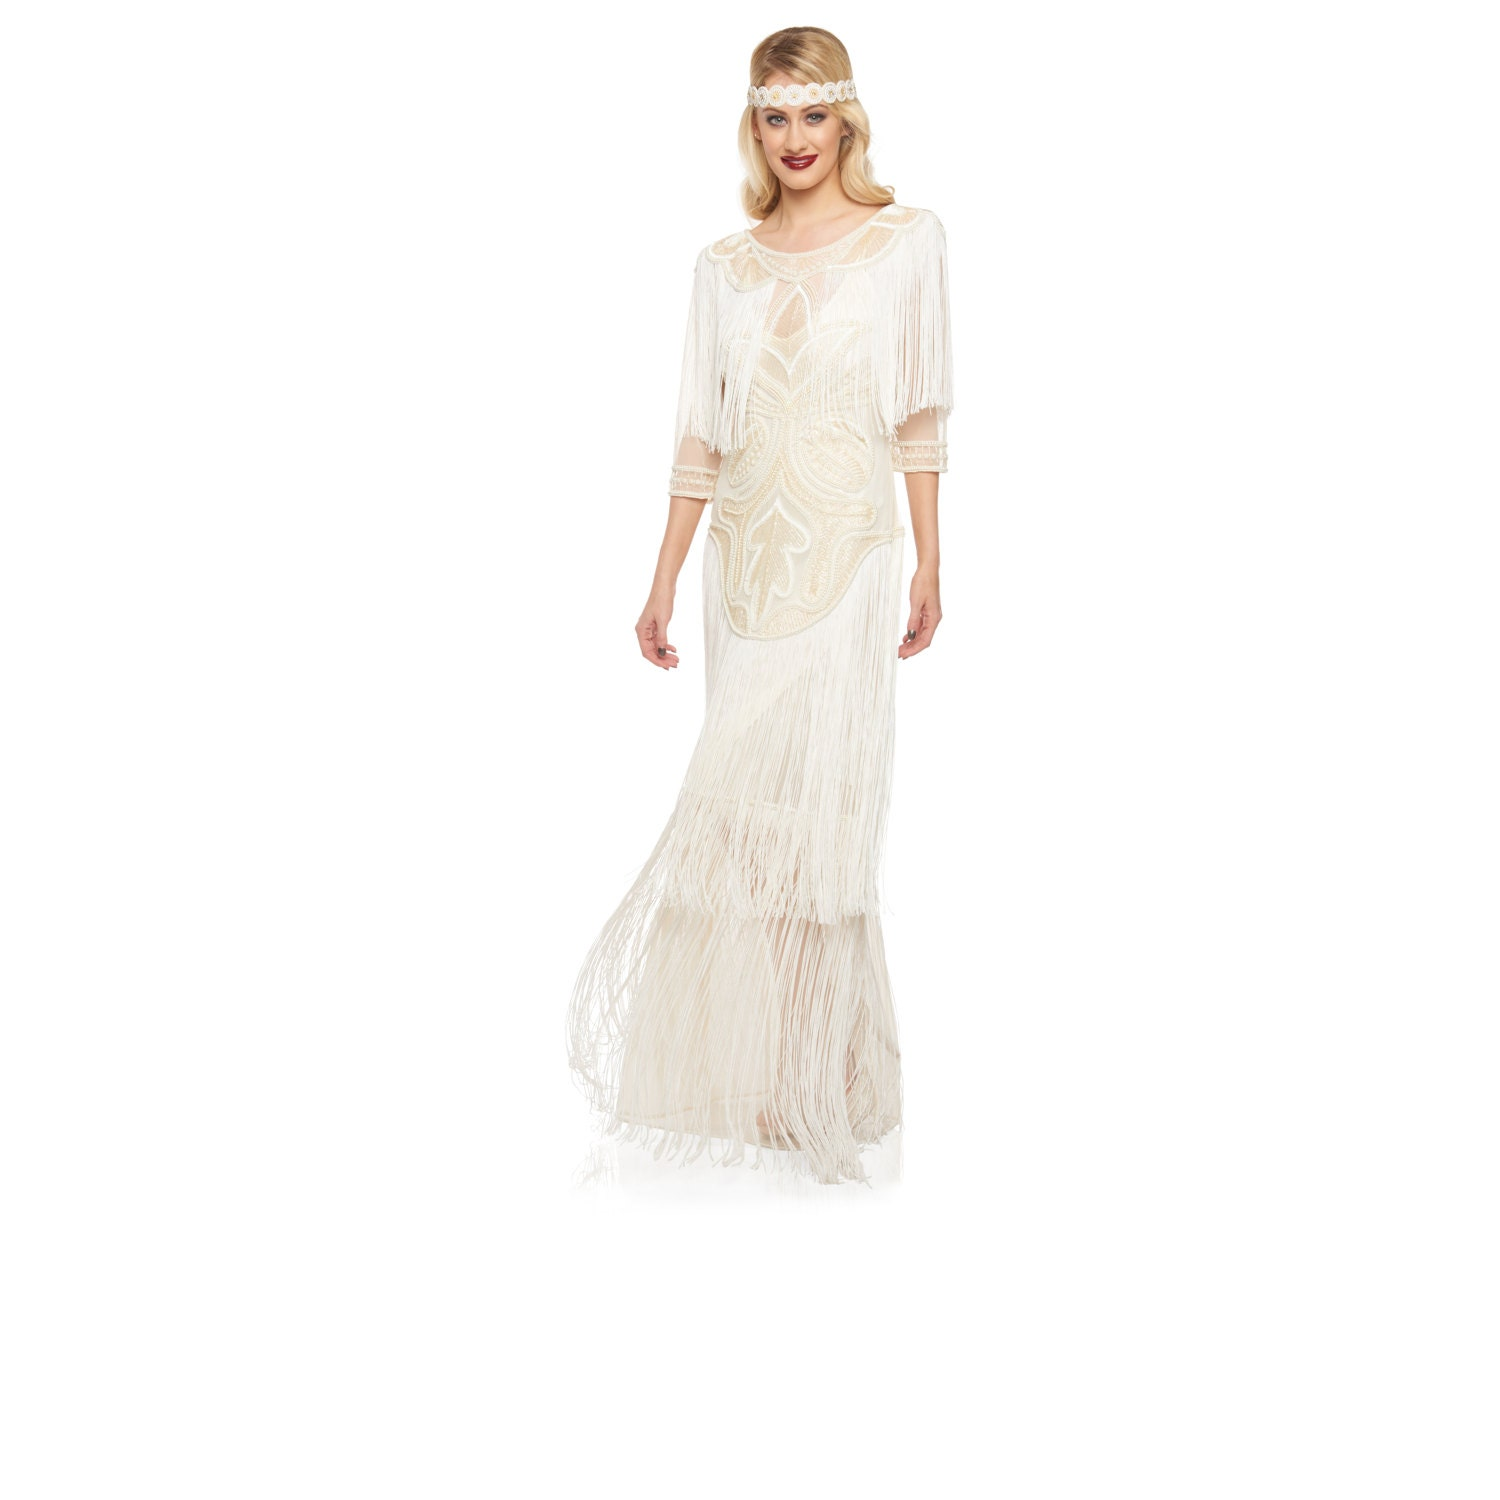 Wedding Gown Cream Glam Prom Maxi Dress With Sleeves 20s